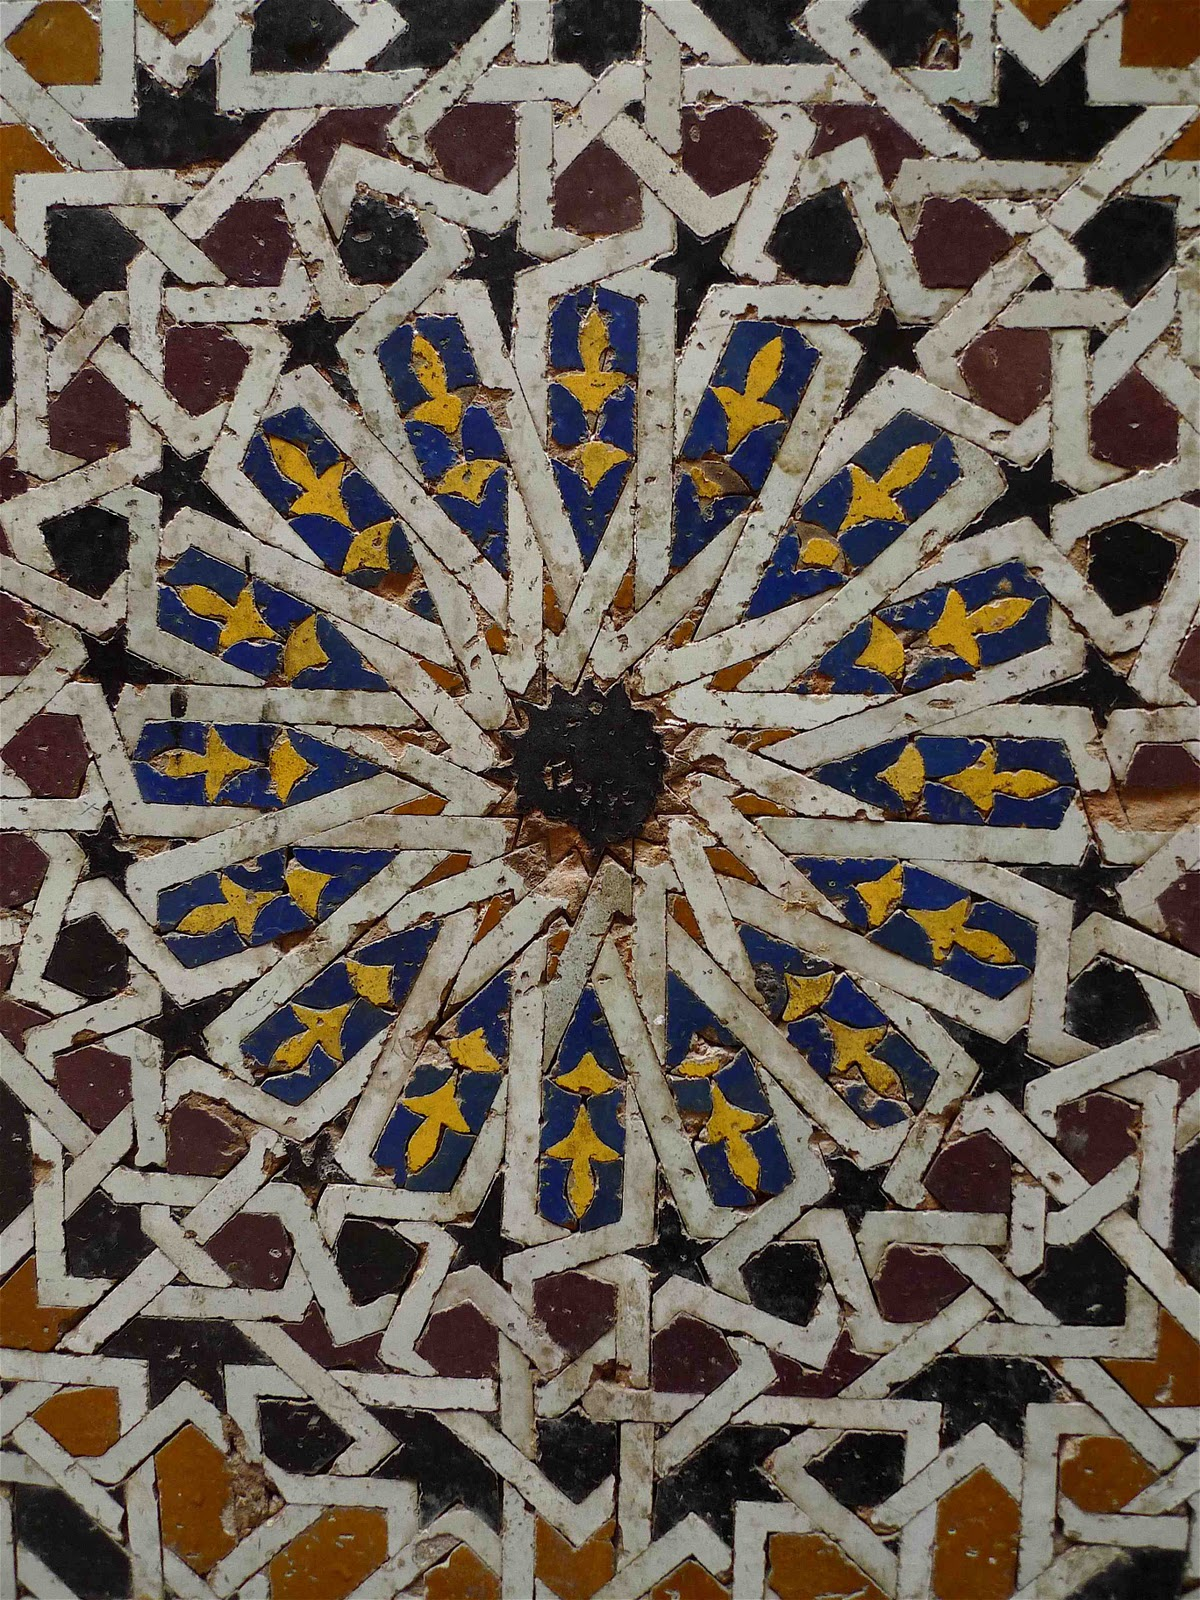 Jeffrey bale 39 s world of gardens the colors of morocco for Fez tiles